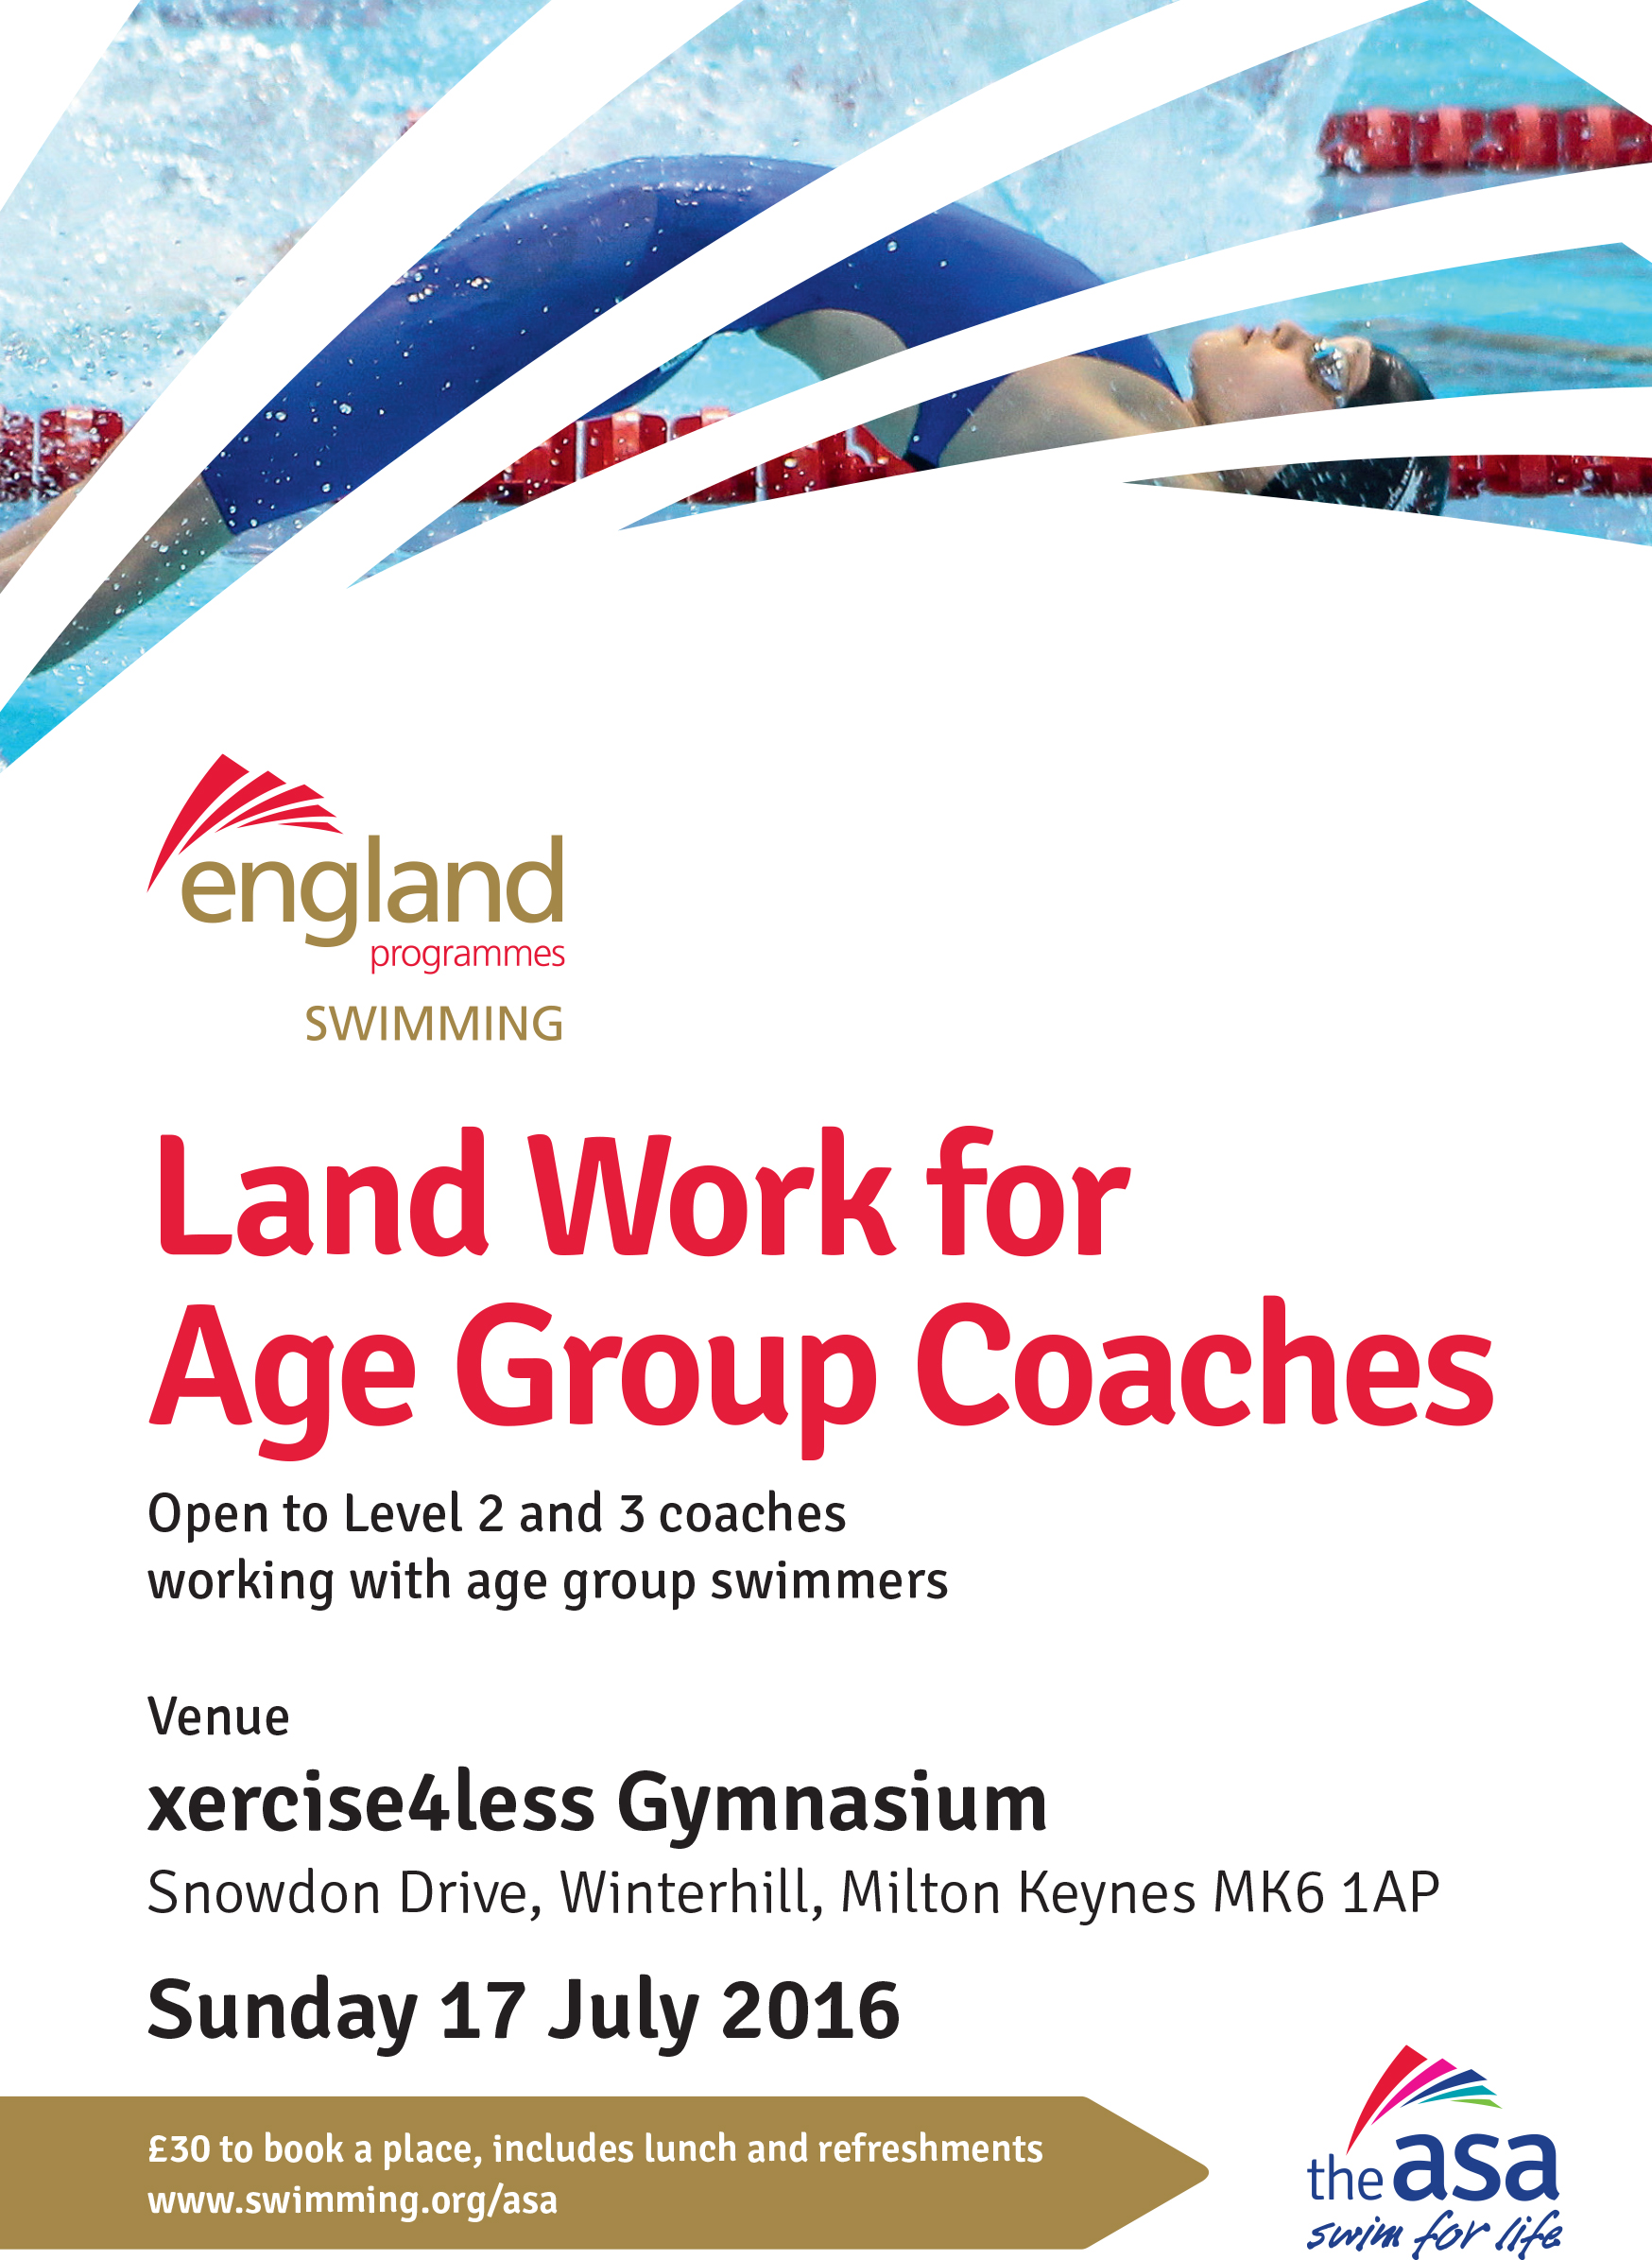 Land Work for Age Group Coaches day